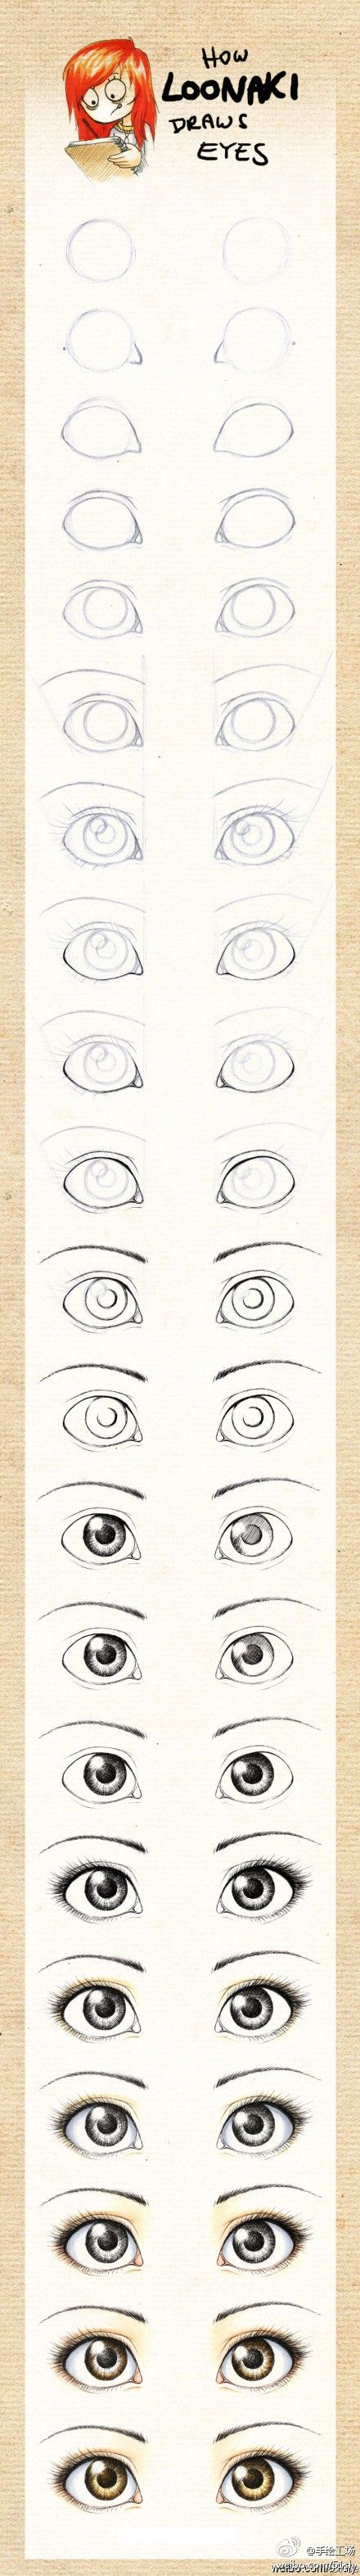 How to draw eyes, step by step.